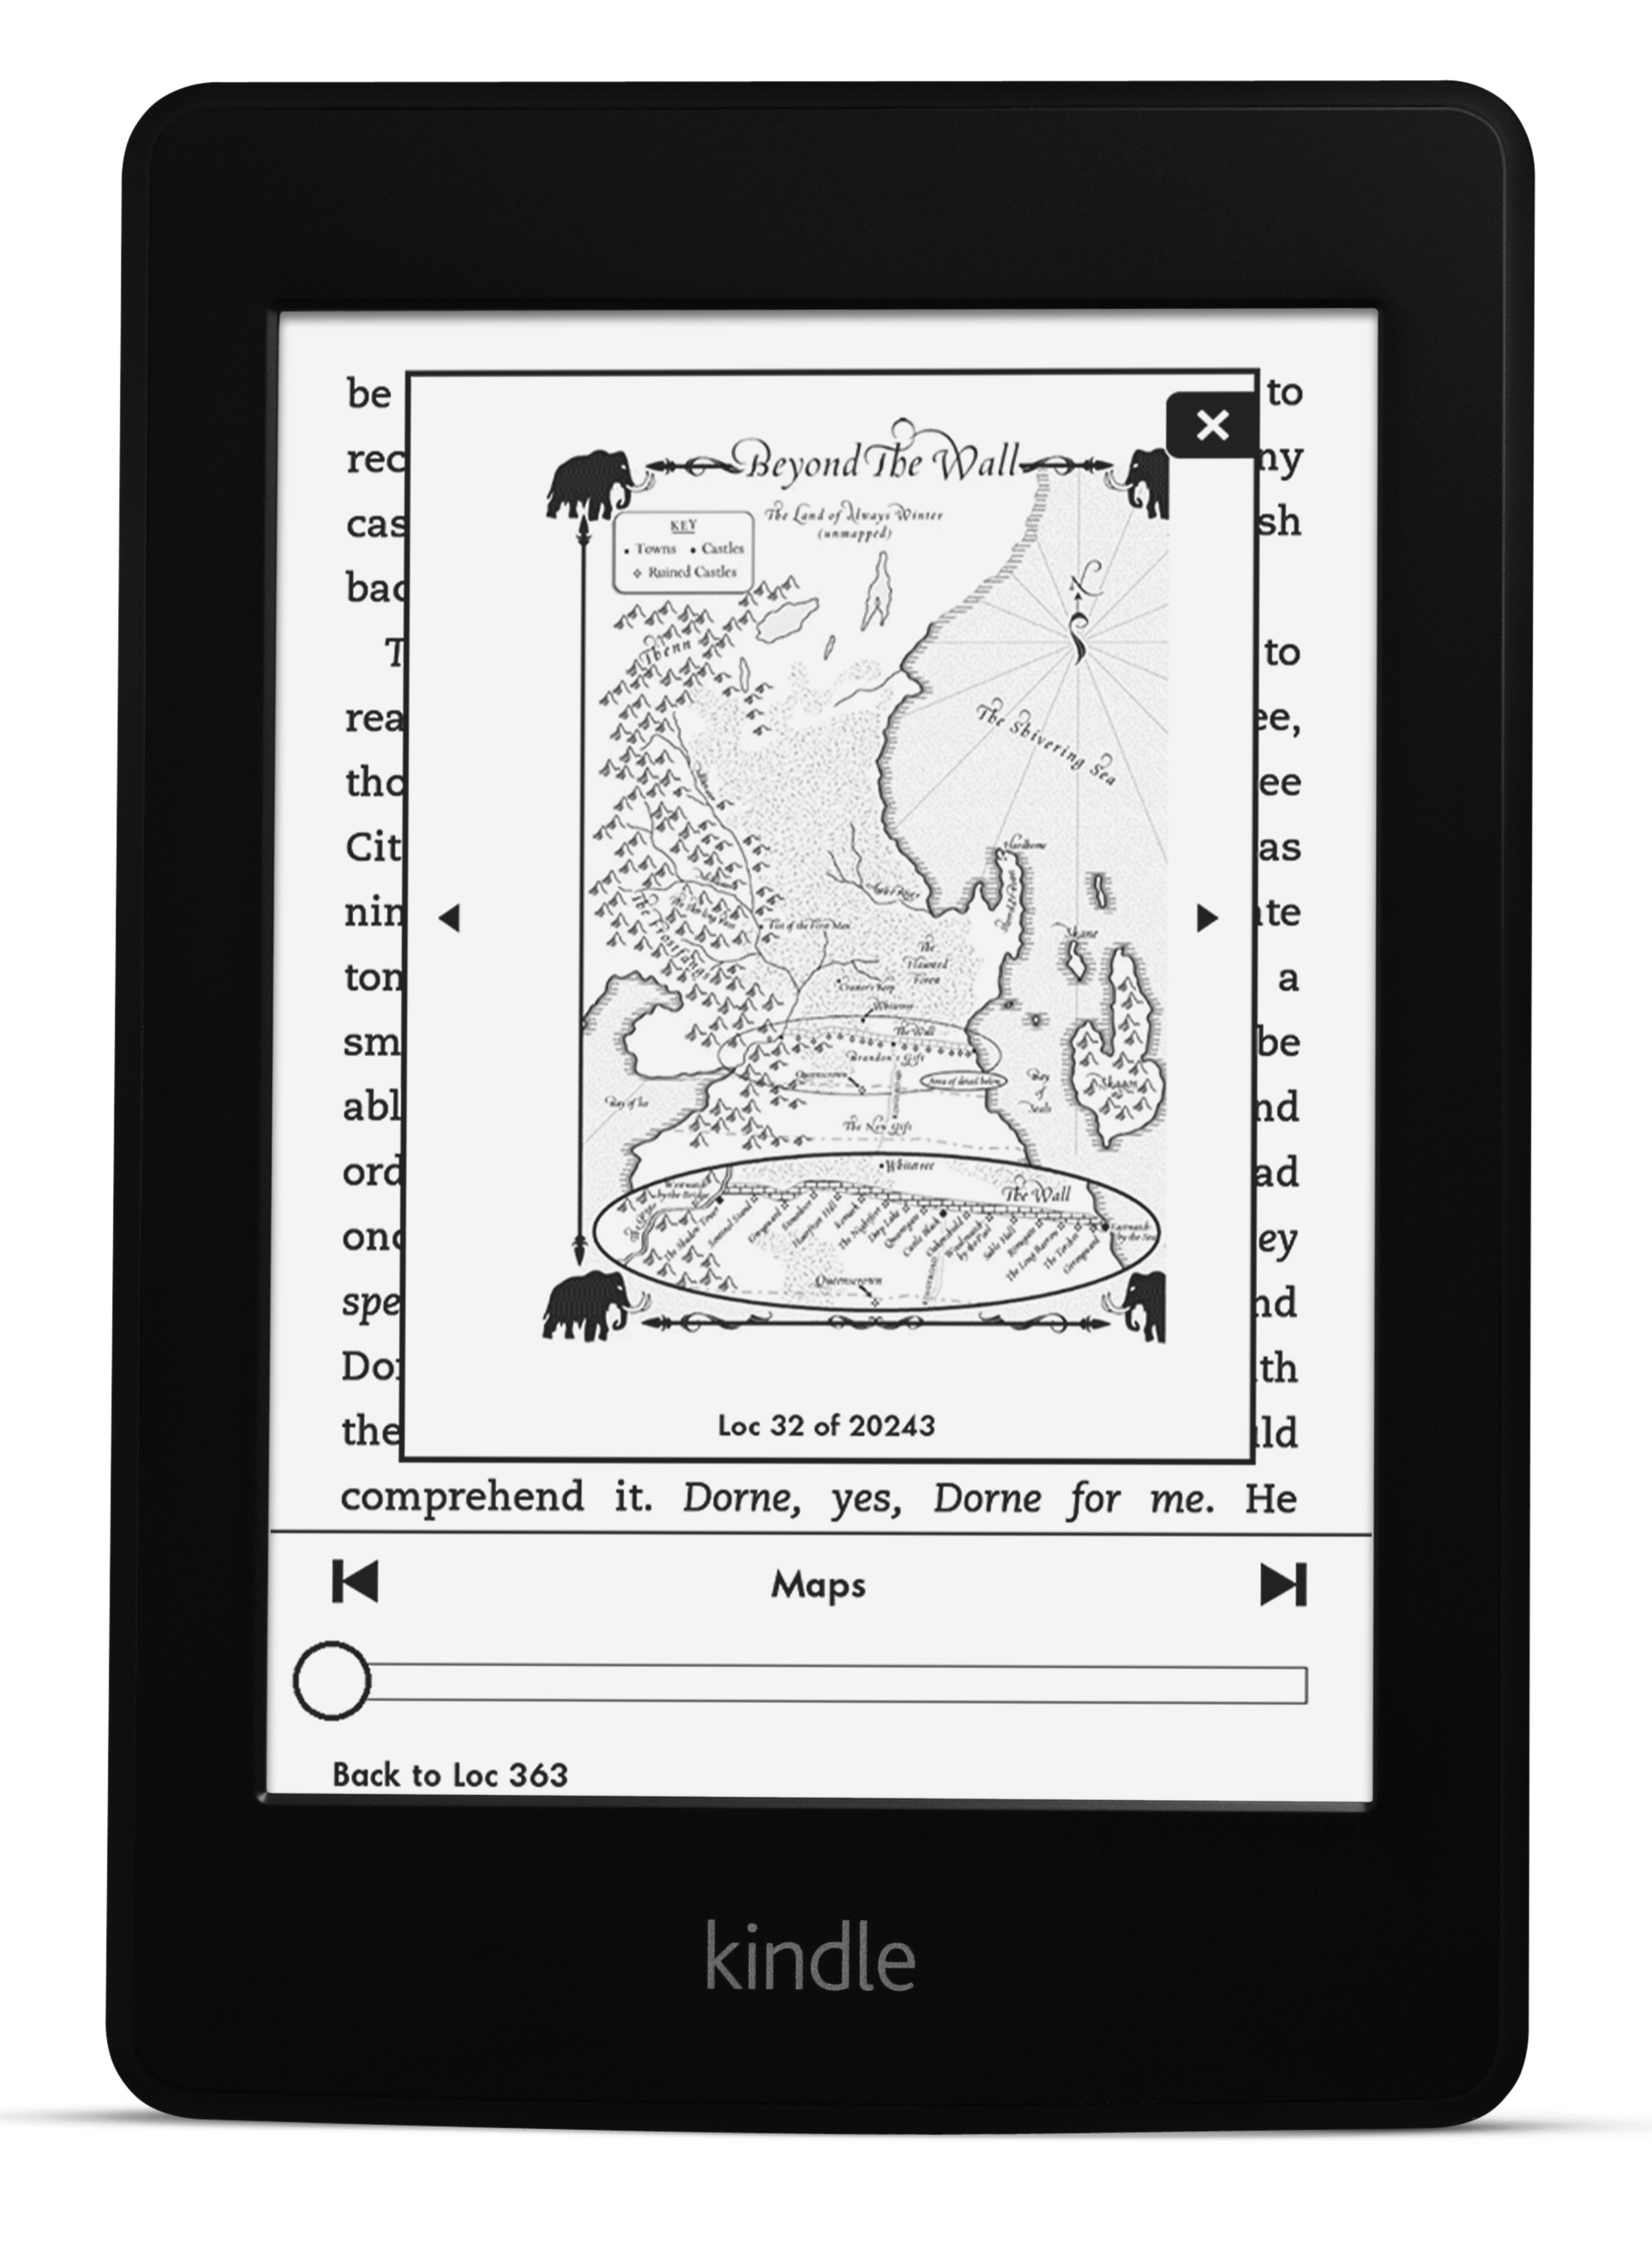 KindlePaperwhite_PageFlip